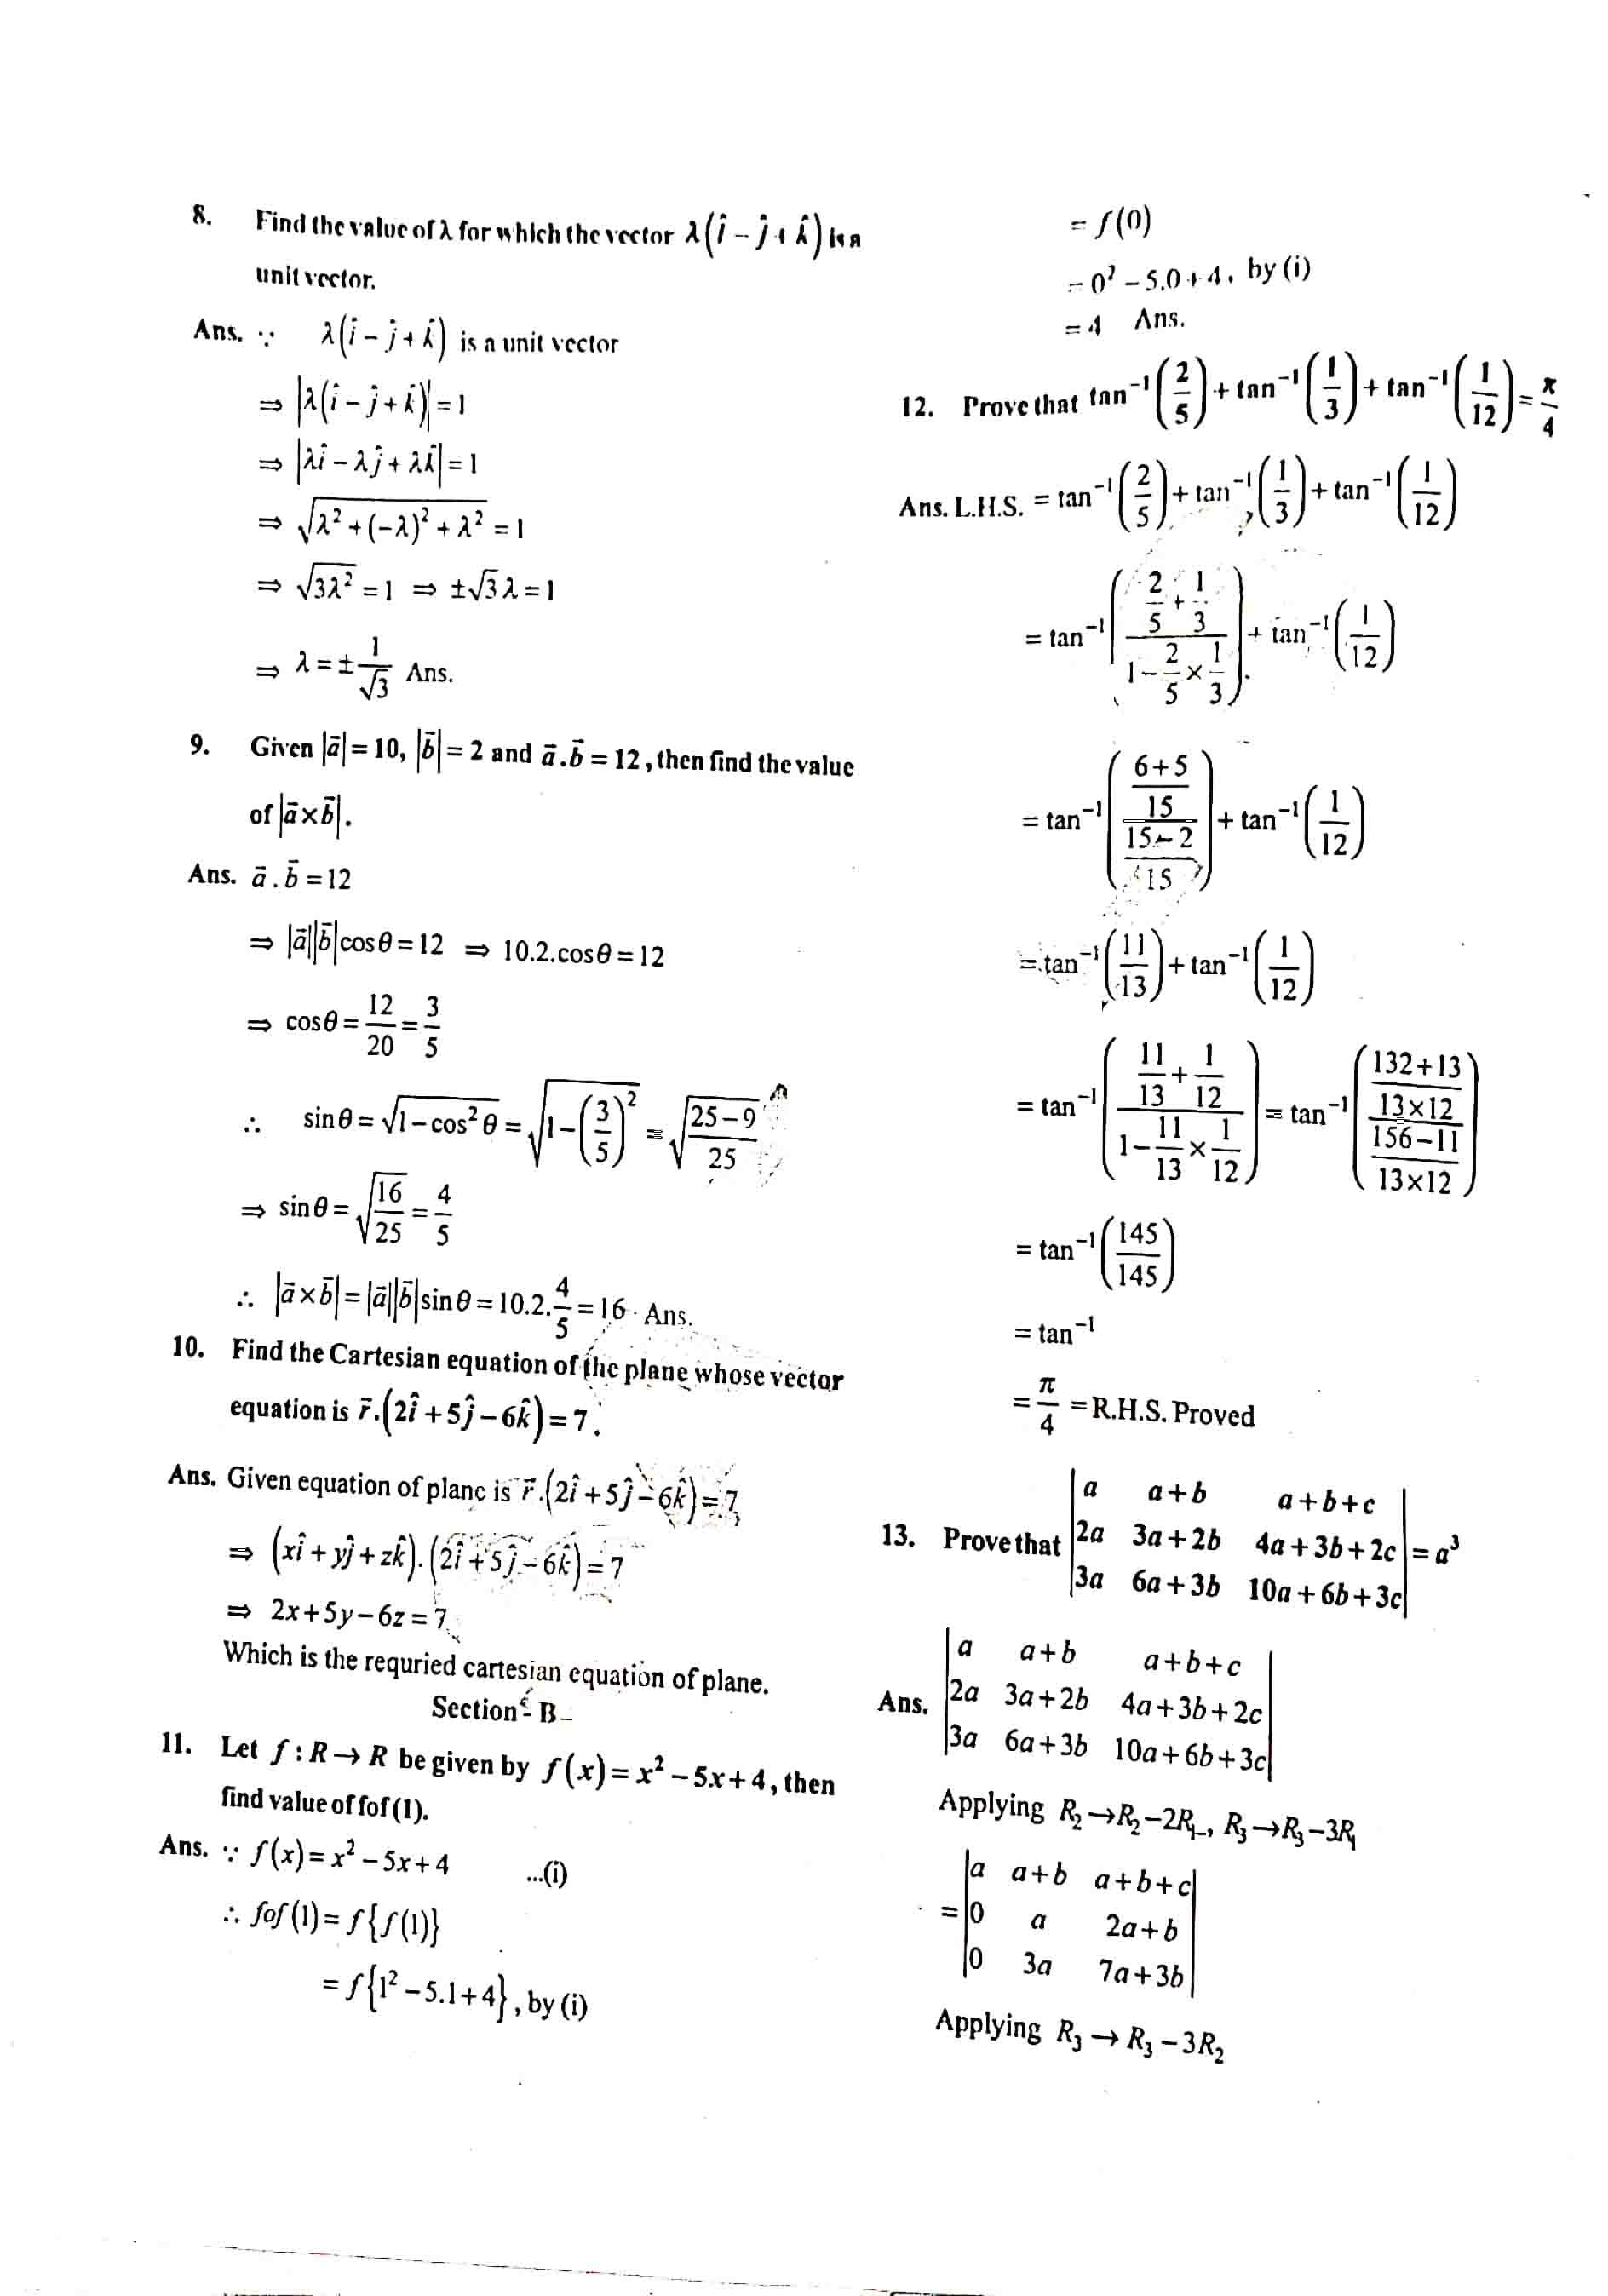 JAC Class 12 math 2019 Question Paper 02